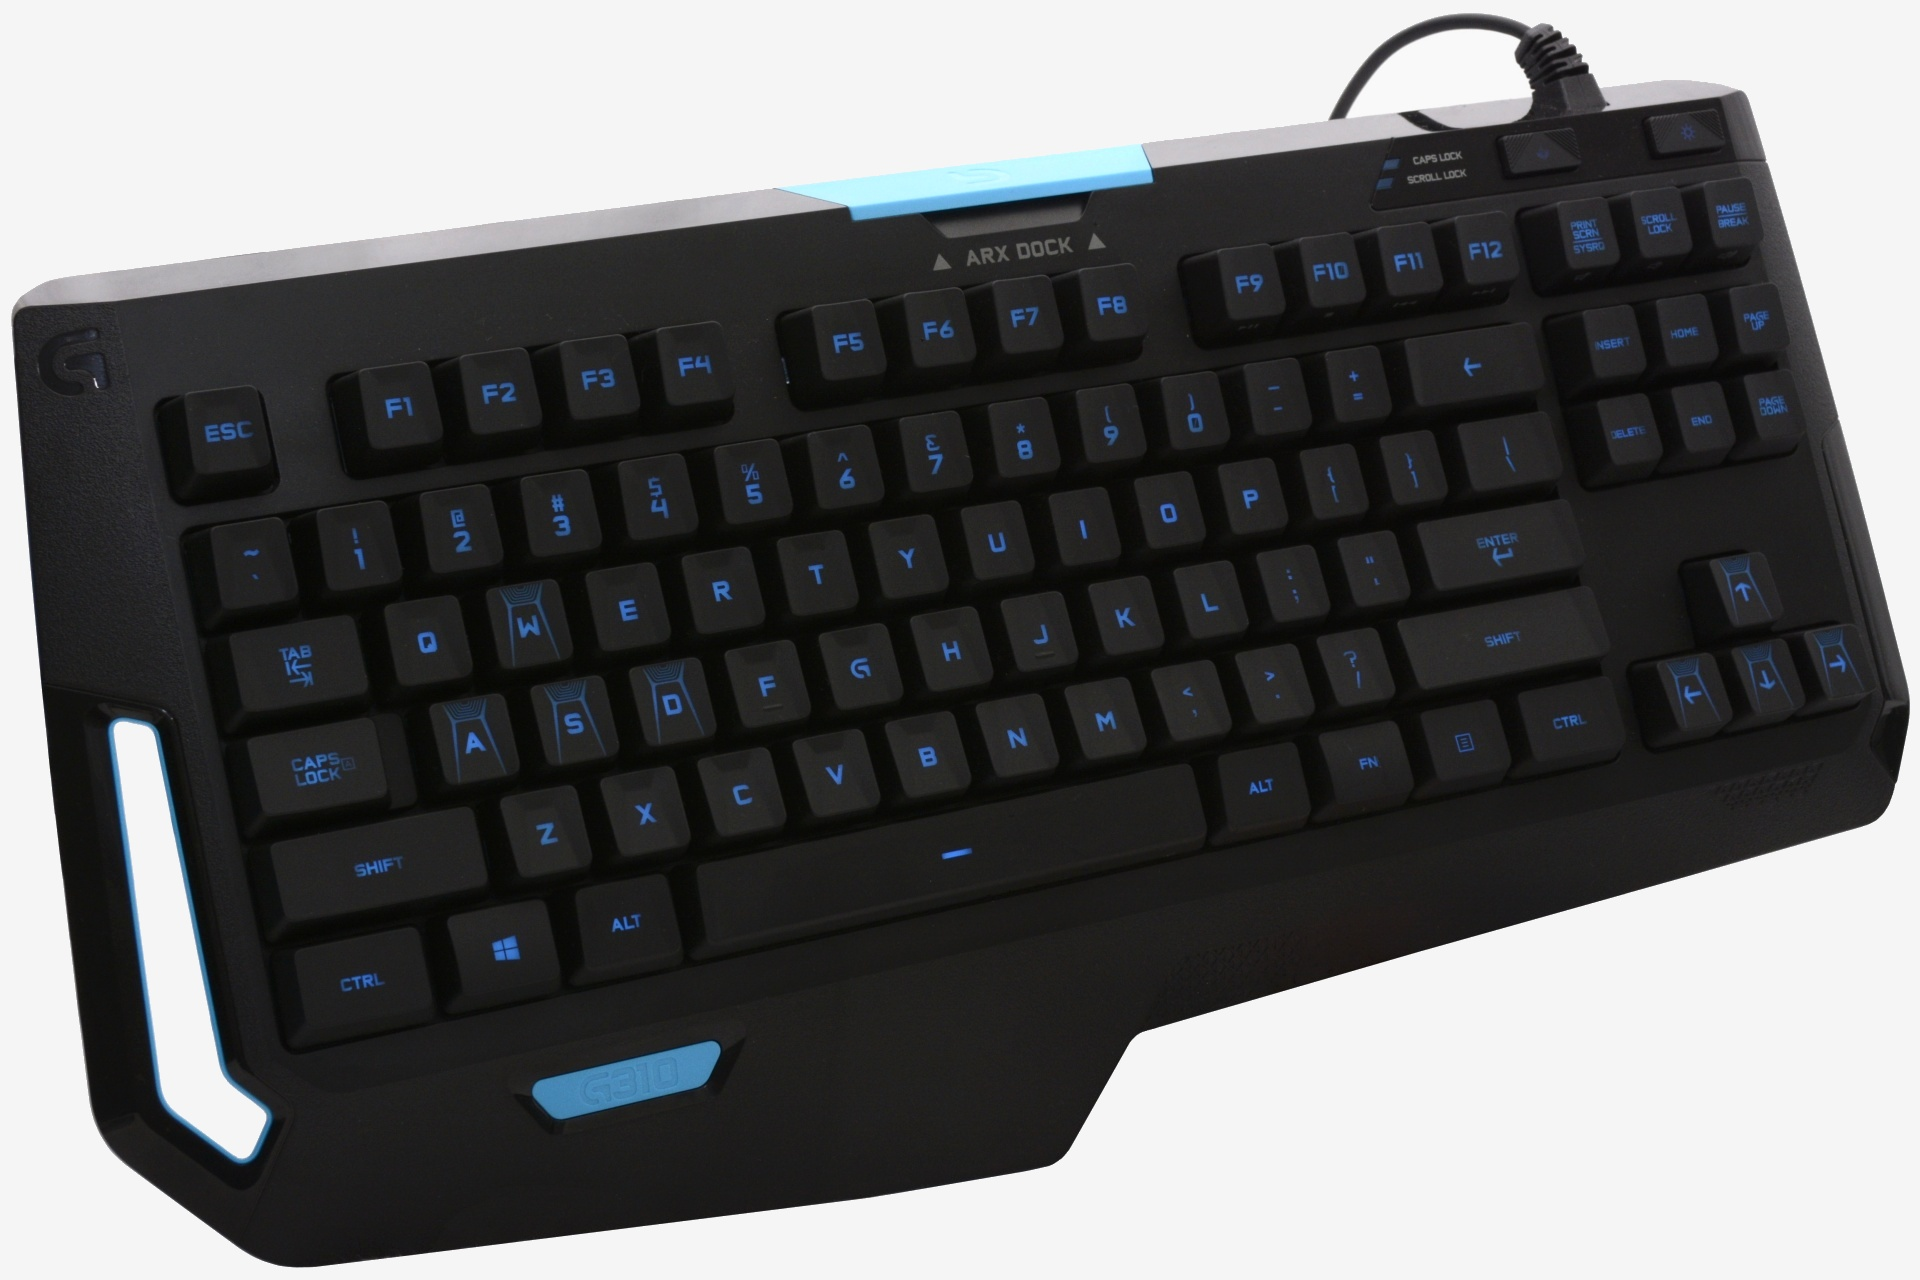 Logitech G310 Atlas Dawn Keyboard Review - TechSpot